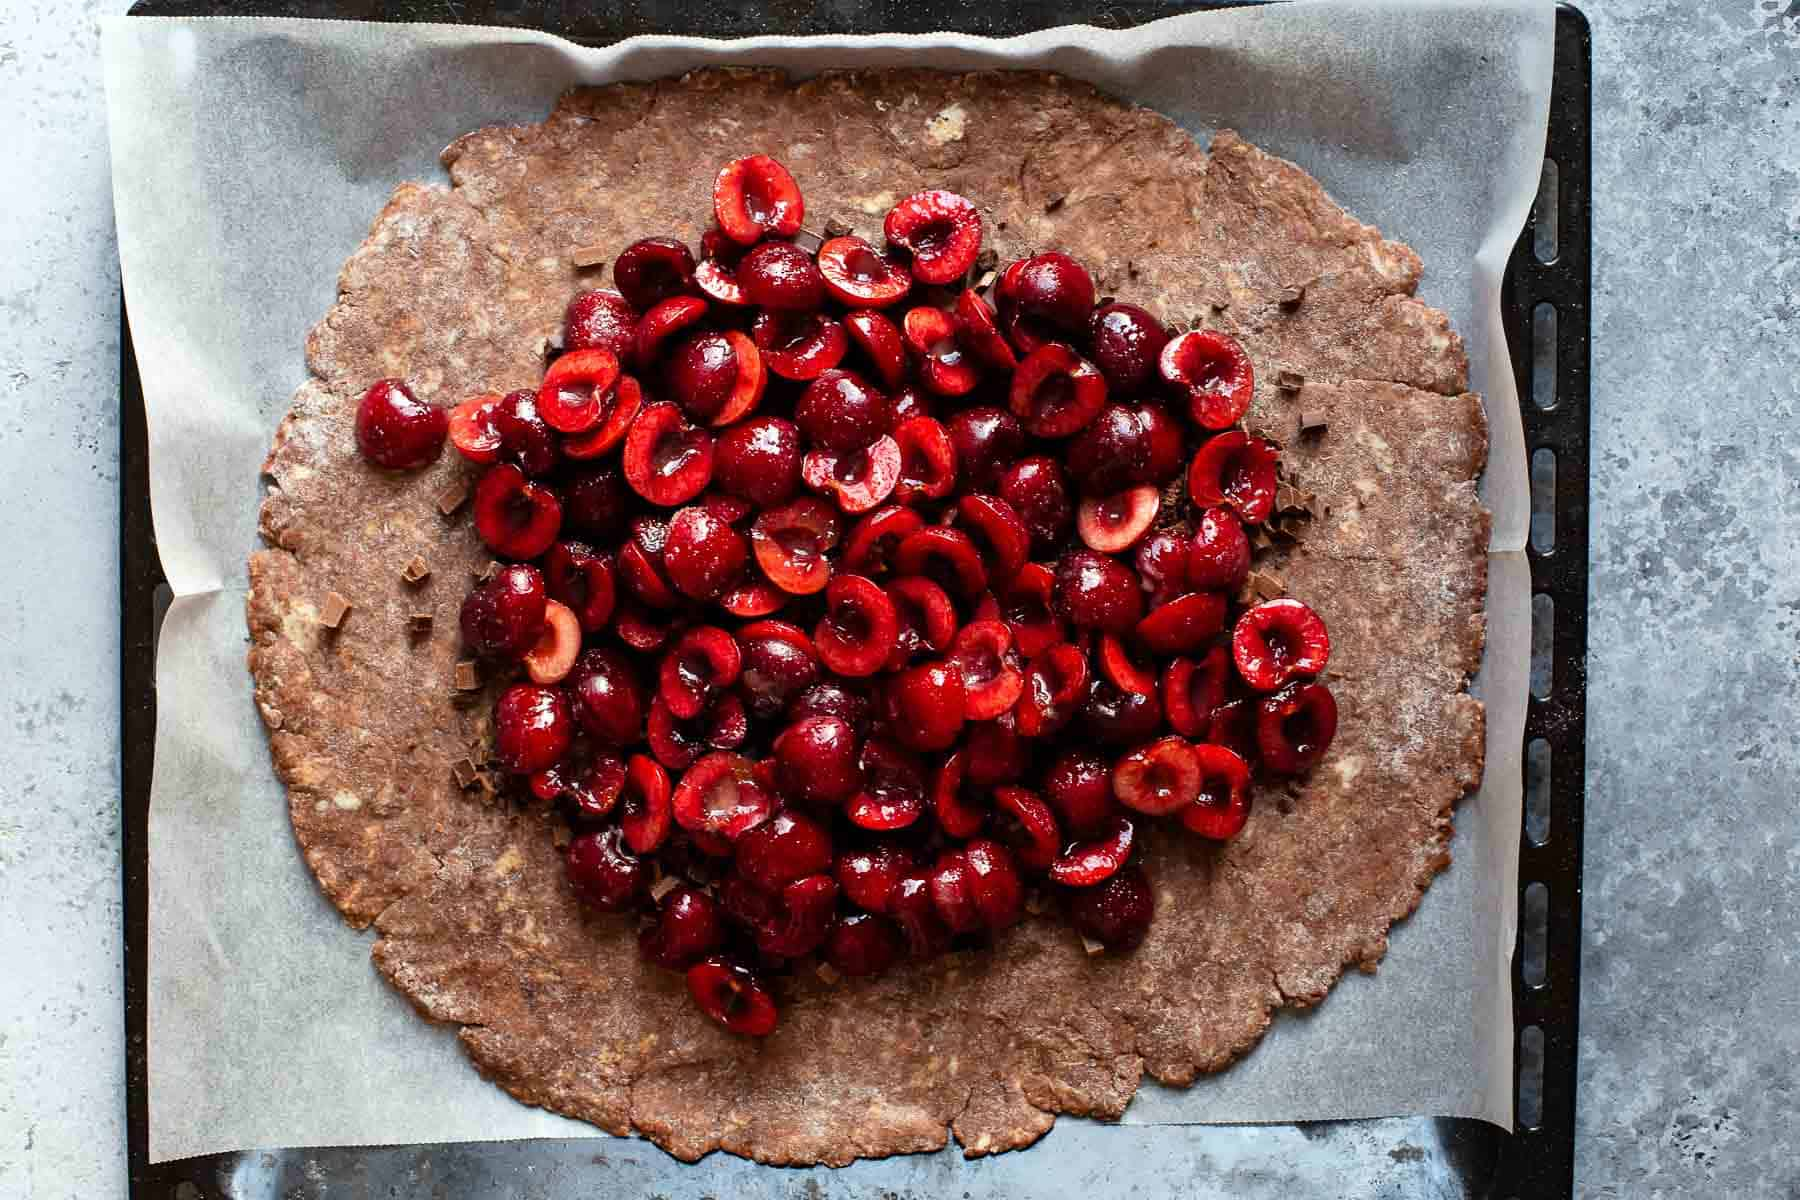 cherries on top of a chocolate pie crust